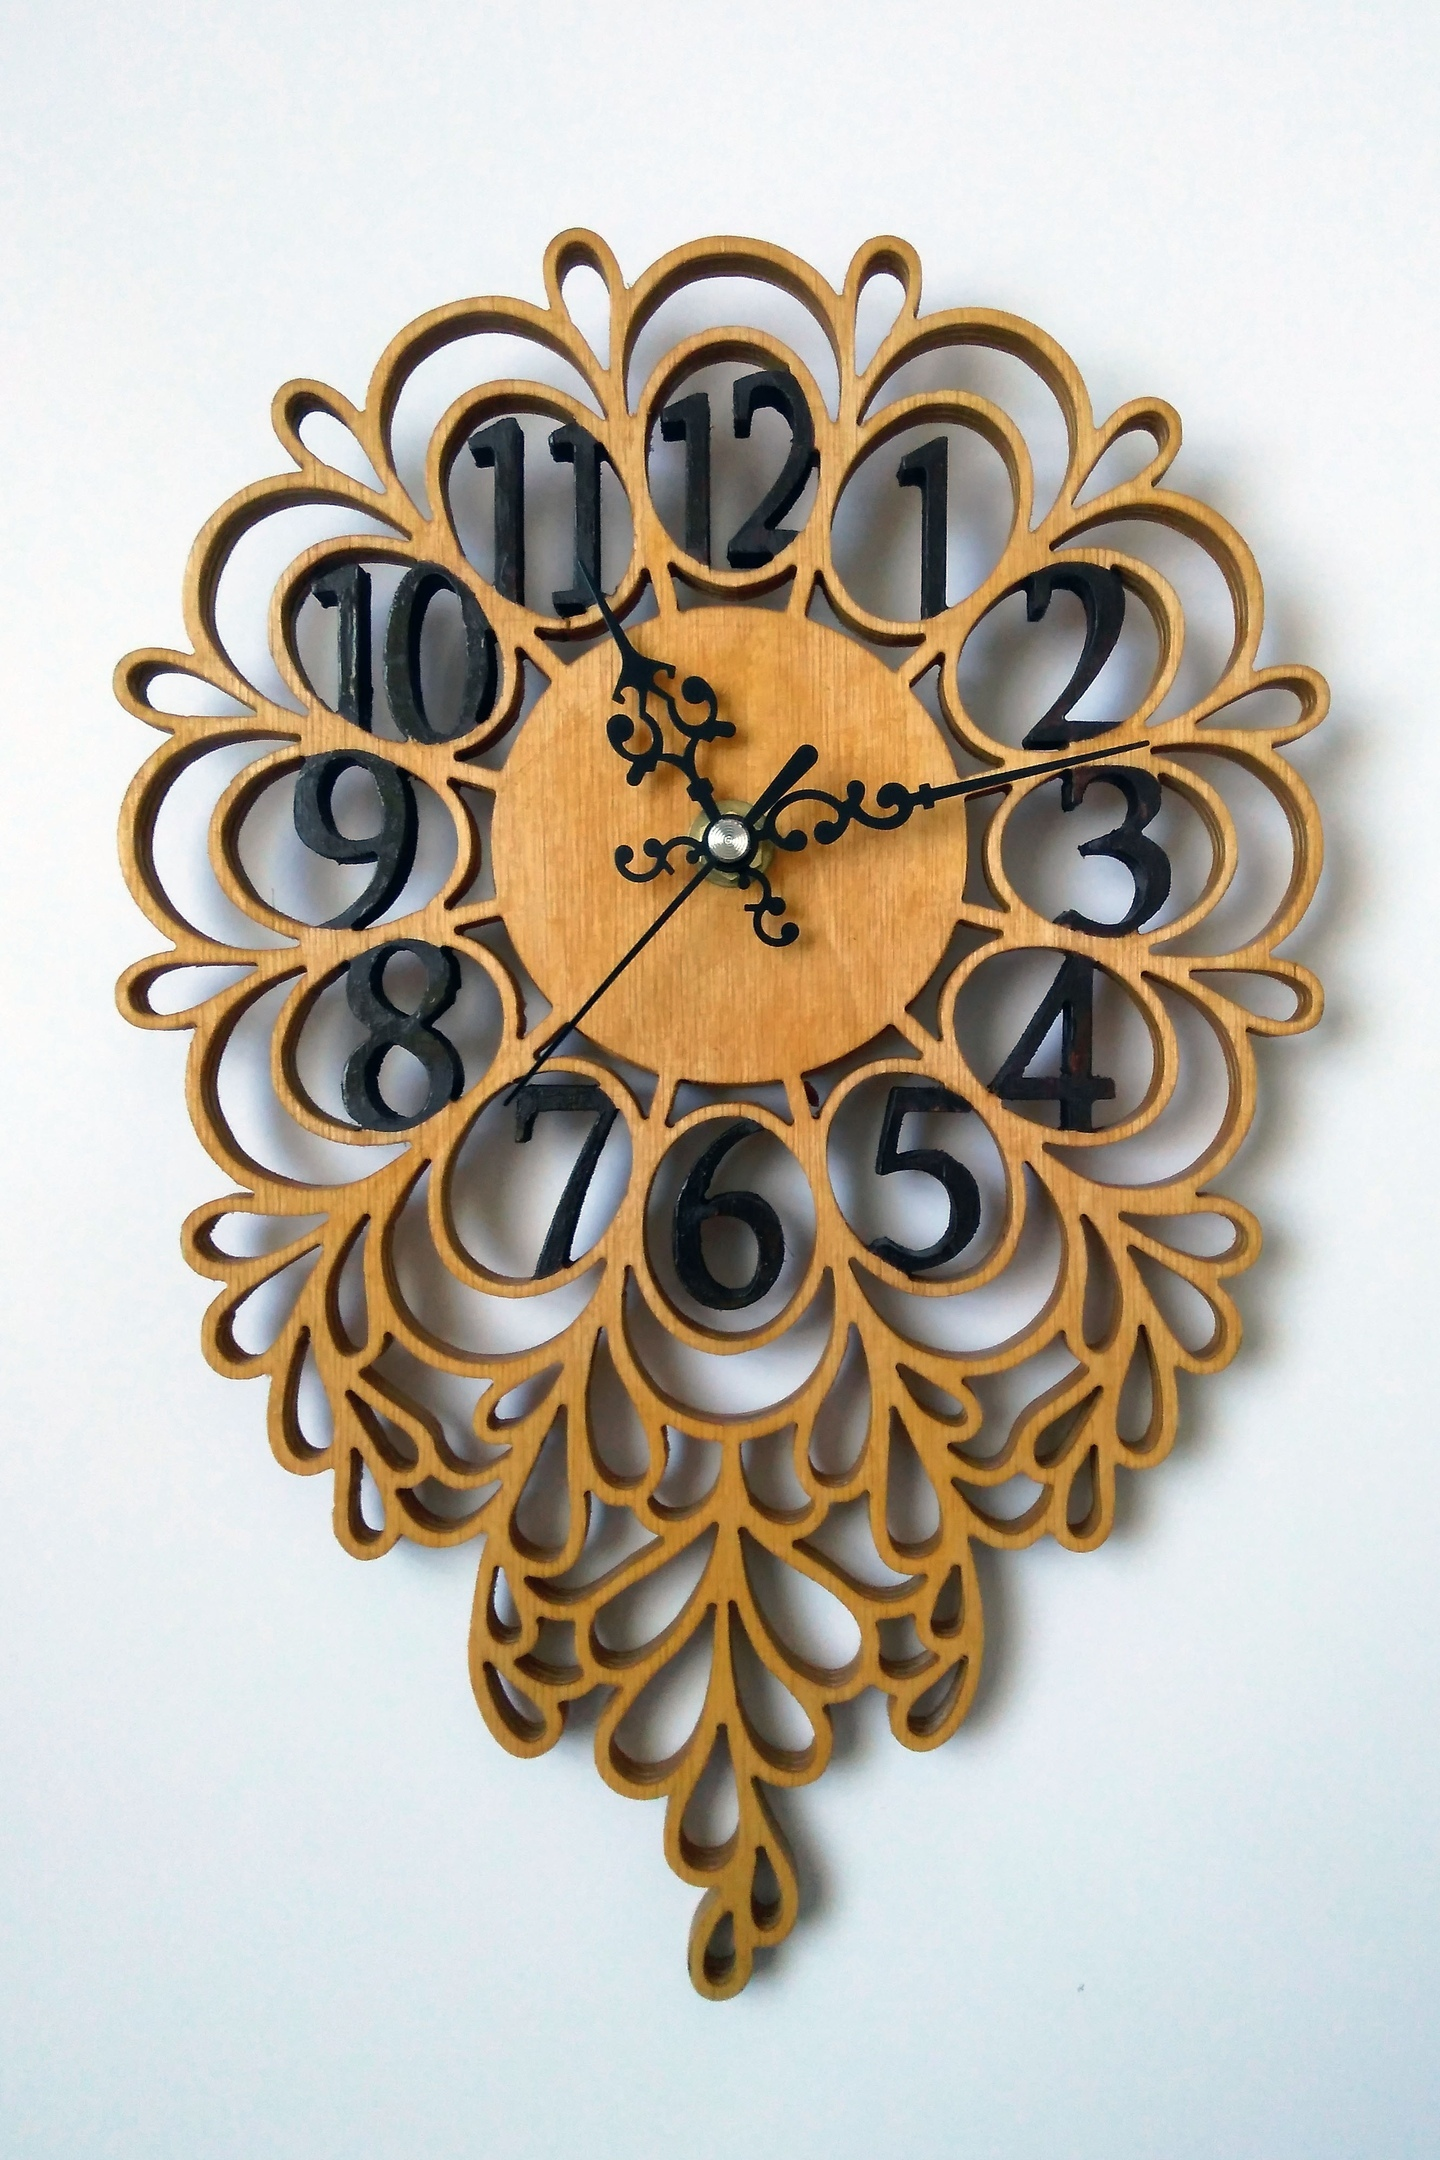 Laser Cut Decorative Wooden Wall Clock DXF File